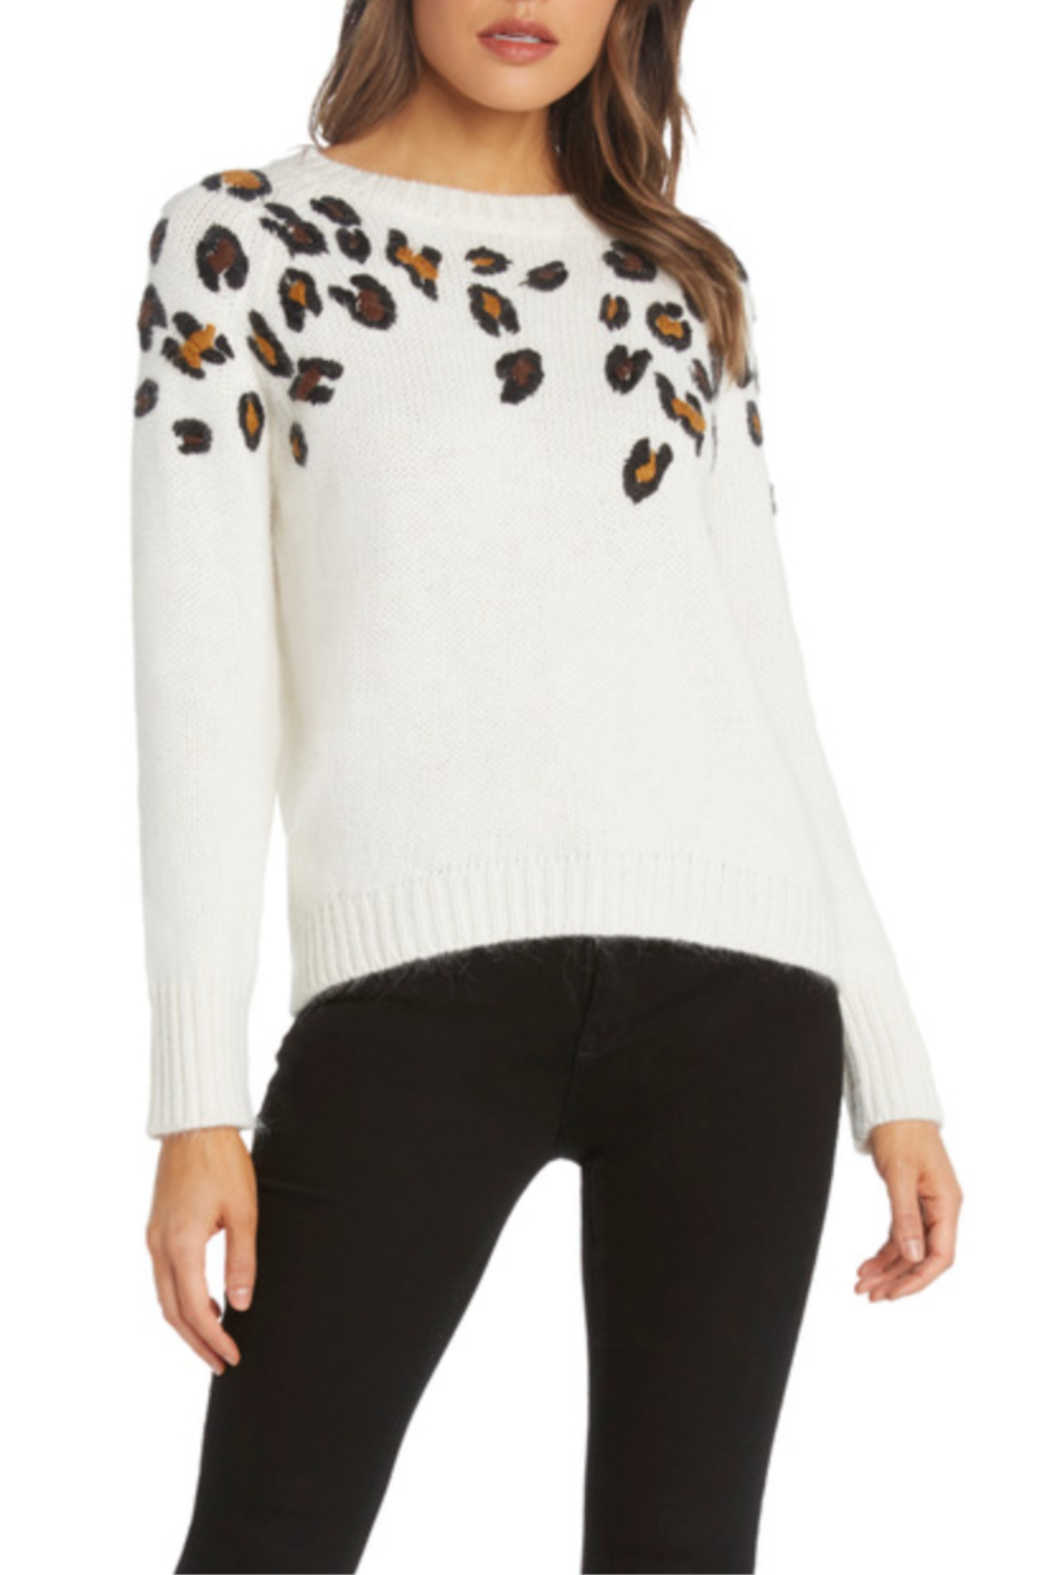 Willow & Clay Leopard Applique Sweater - Main Image